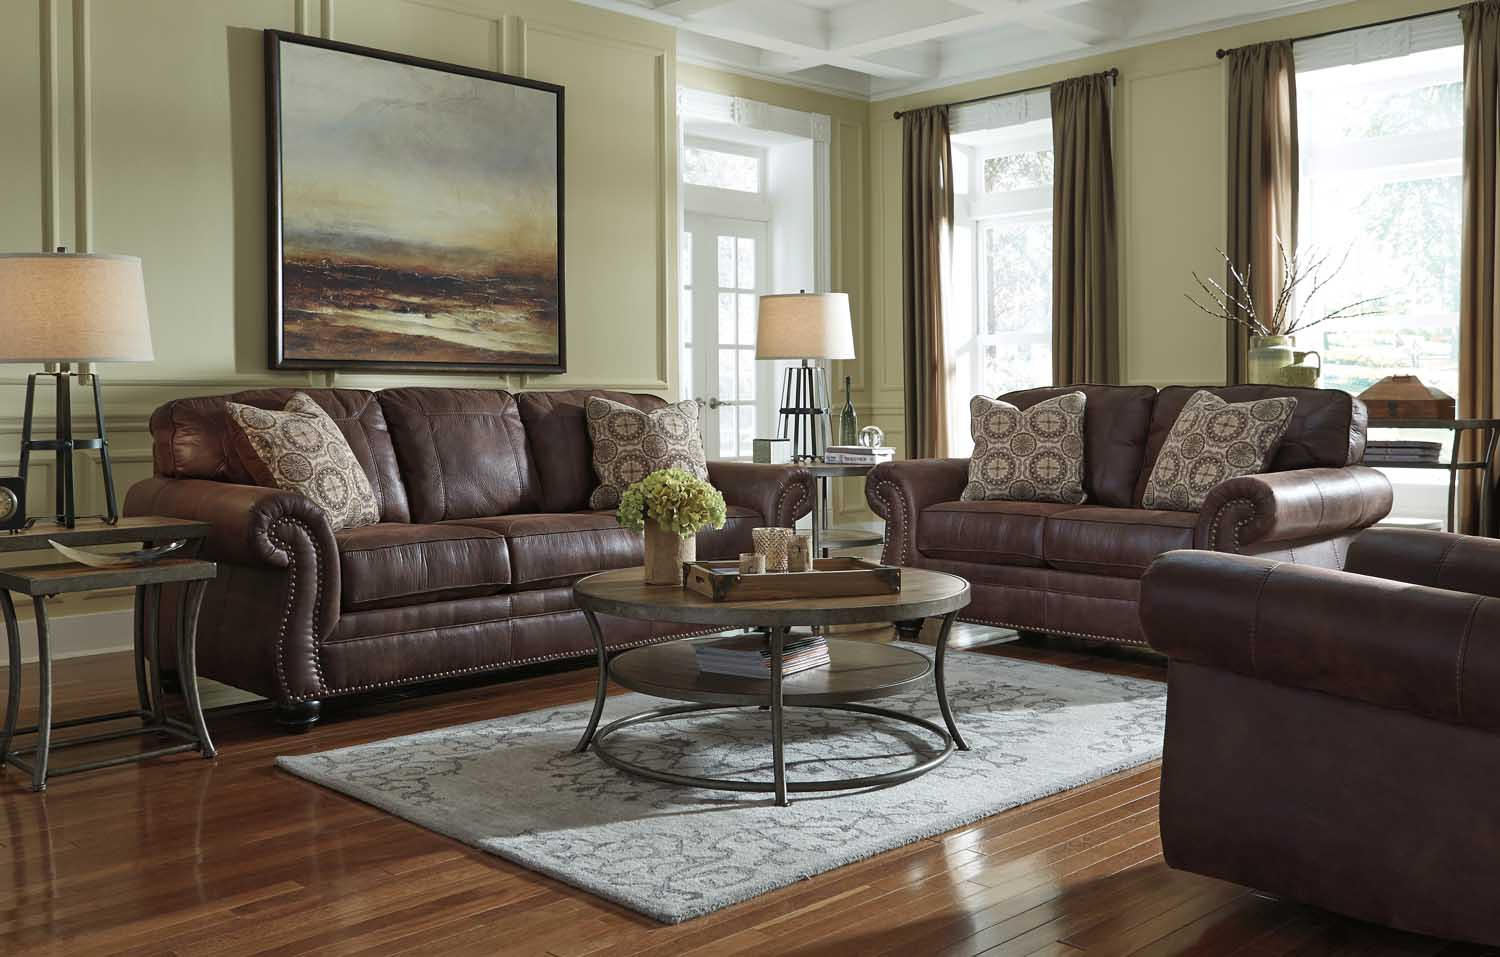 Ashley Furniture 80003 Breville   Espresso Living Room Set Houston Texas  USA Aztec Furniture.